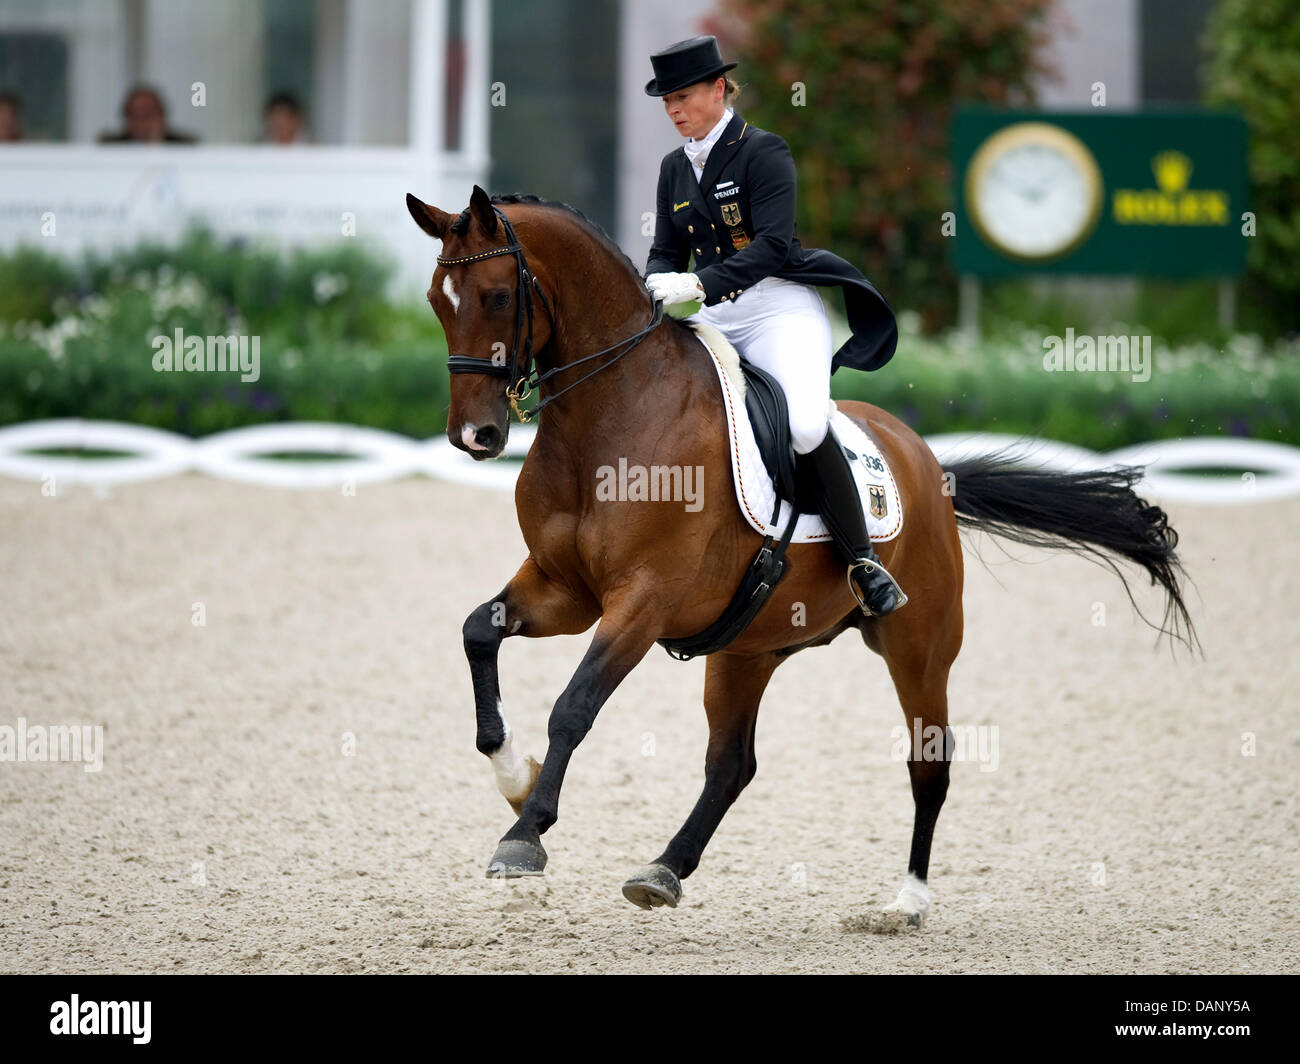 German Isabell Werth rides El Santo during the dressage riding at the CHIO in Aachen, Germany, 14 July 2011. Isabell - Stock Image